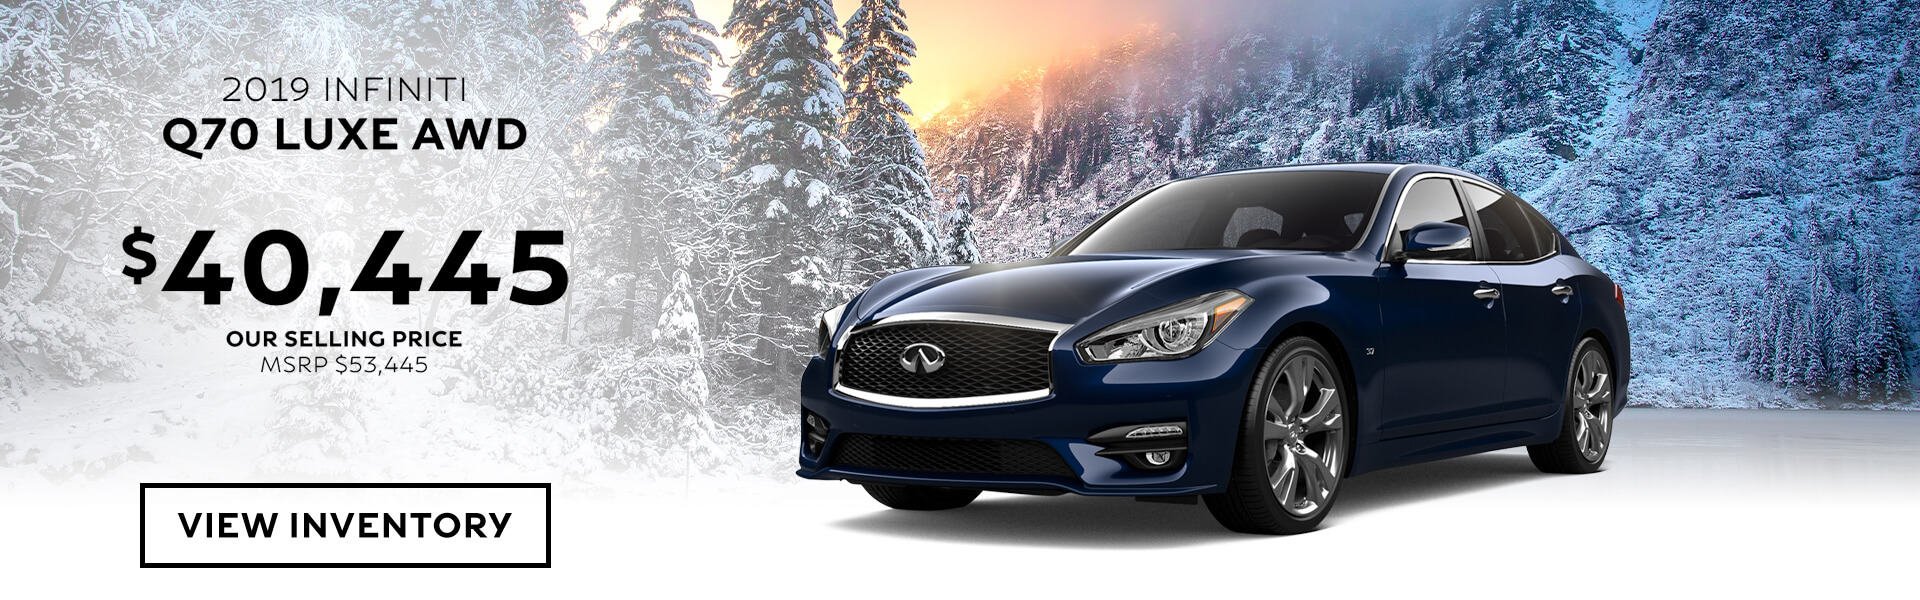 Q70 LUXE - Purchase for 40,445